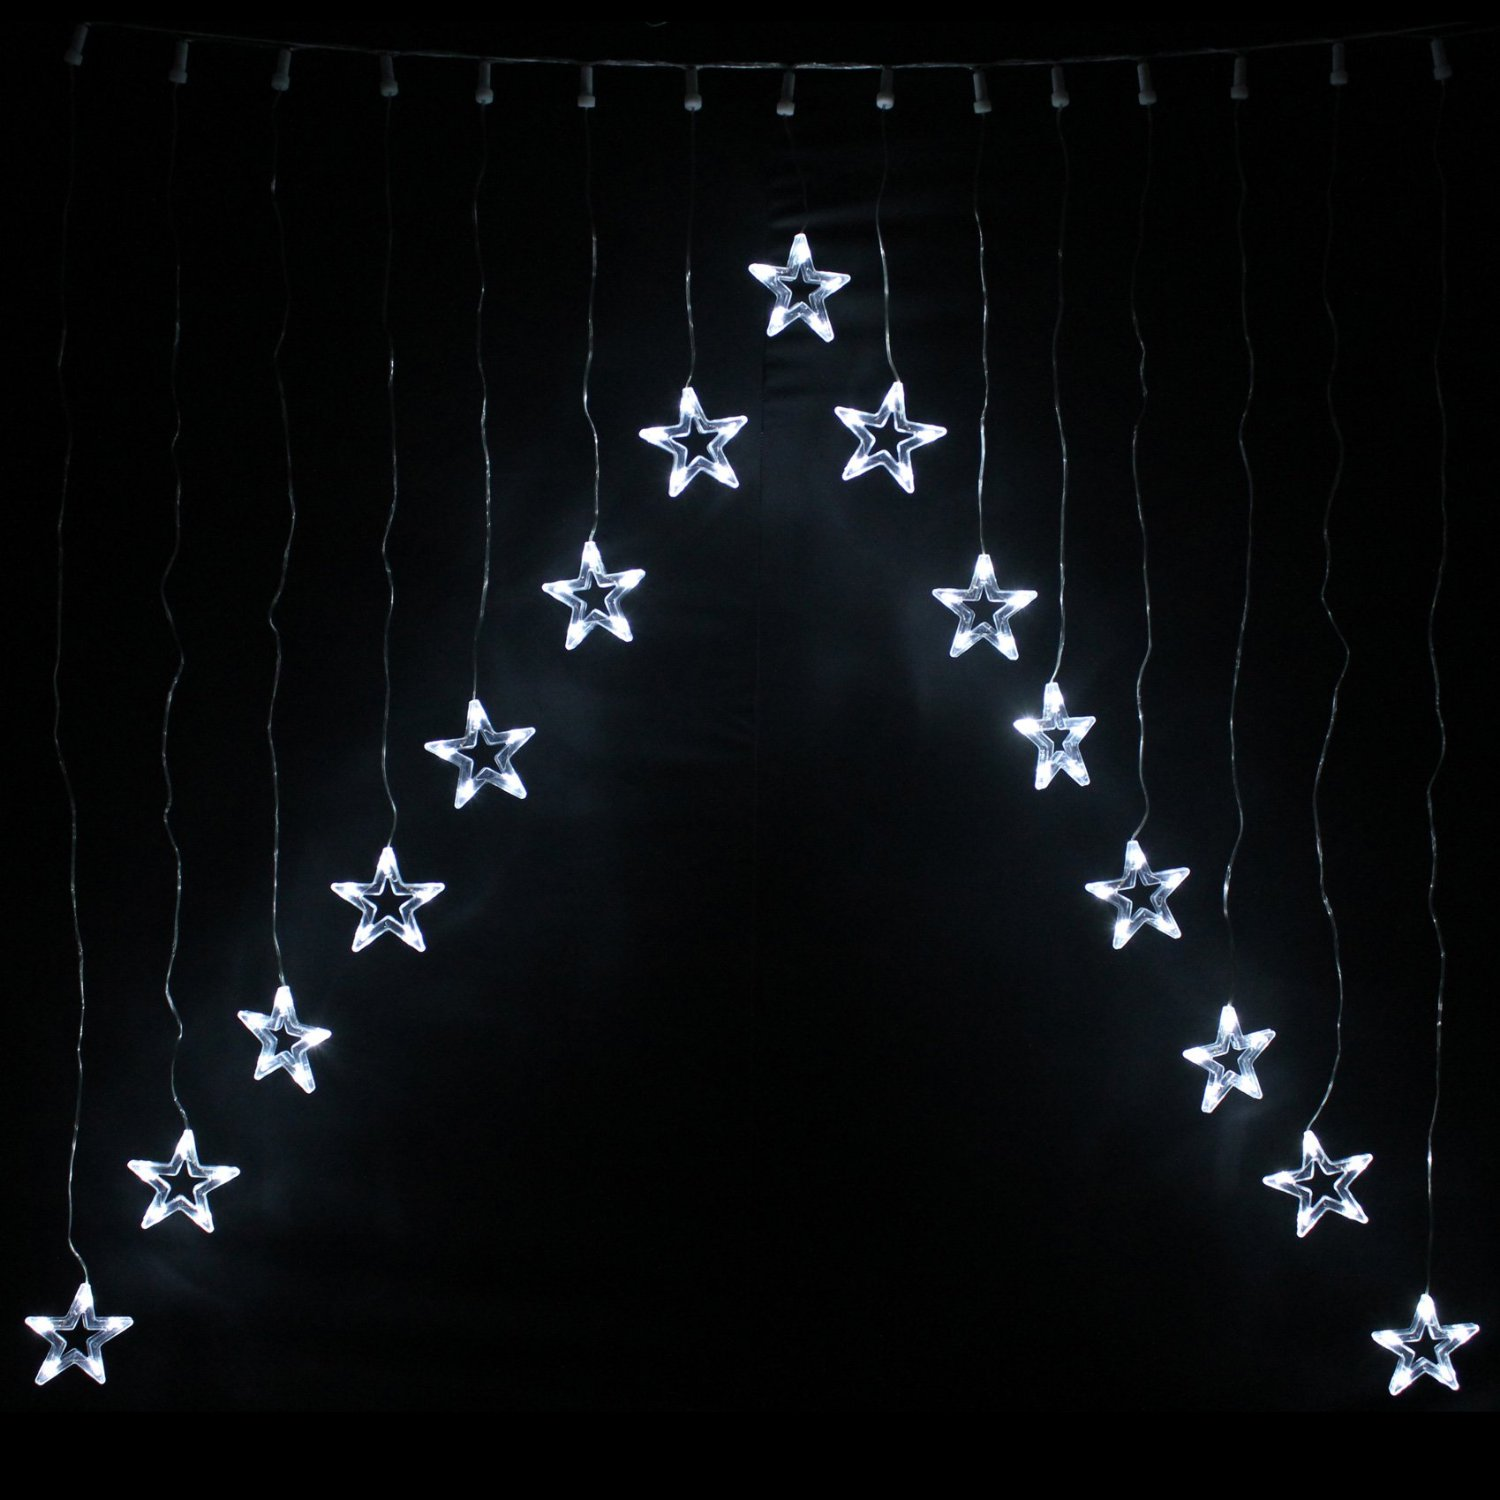 Christmas Lights V Shaped 15 Star Curtain Window Decoration 75 White LED Bulbs